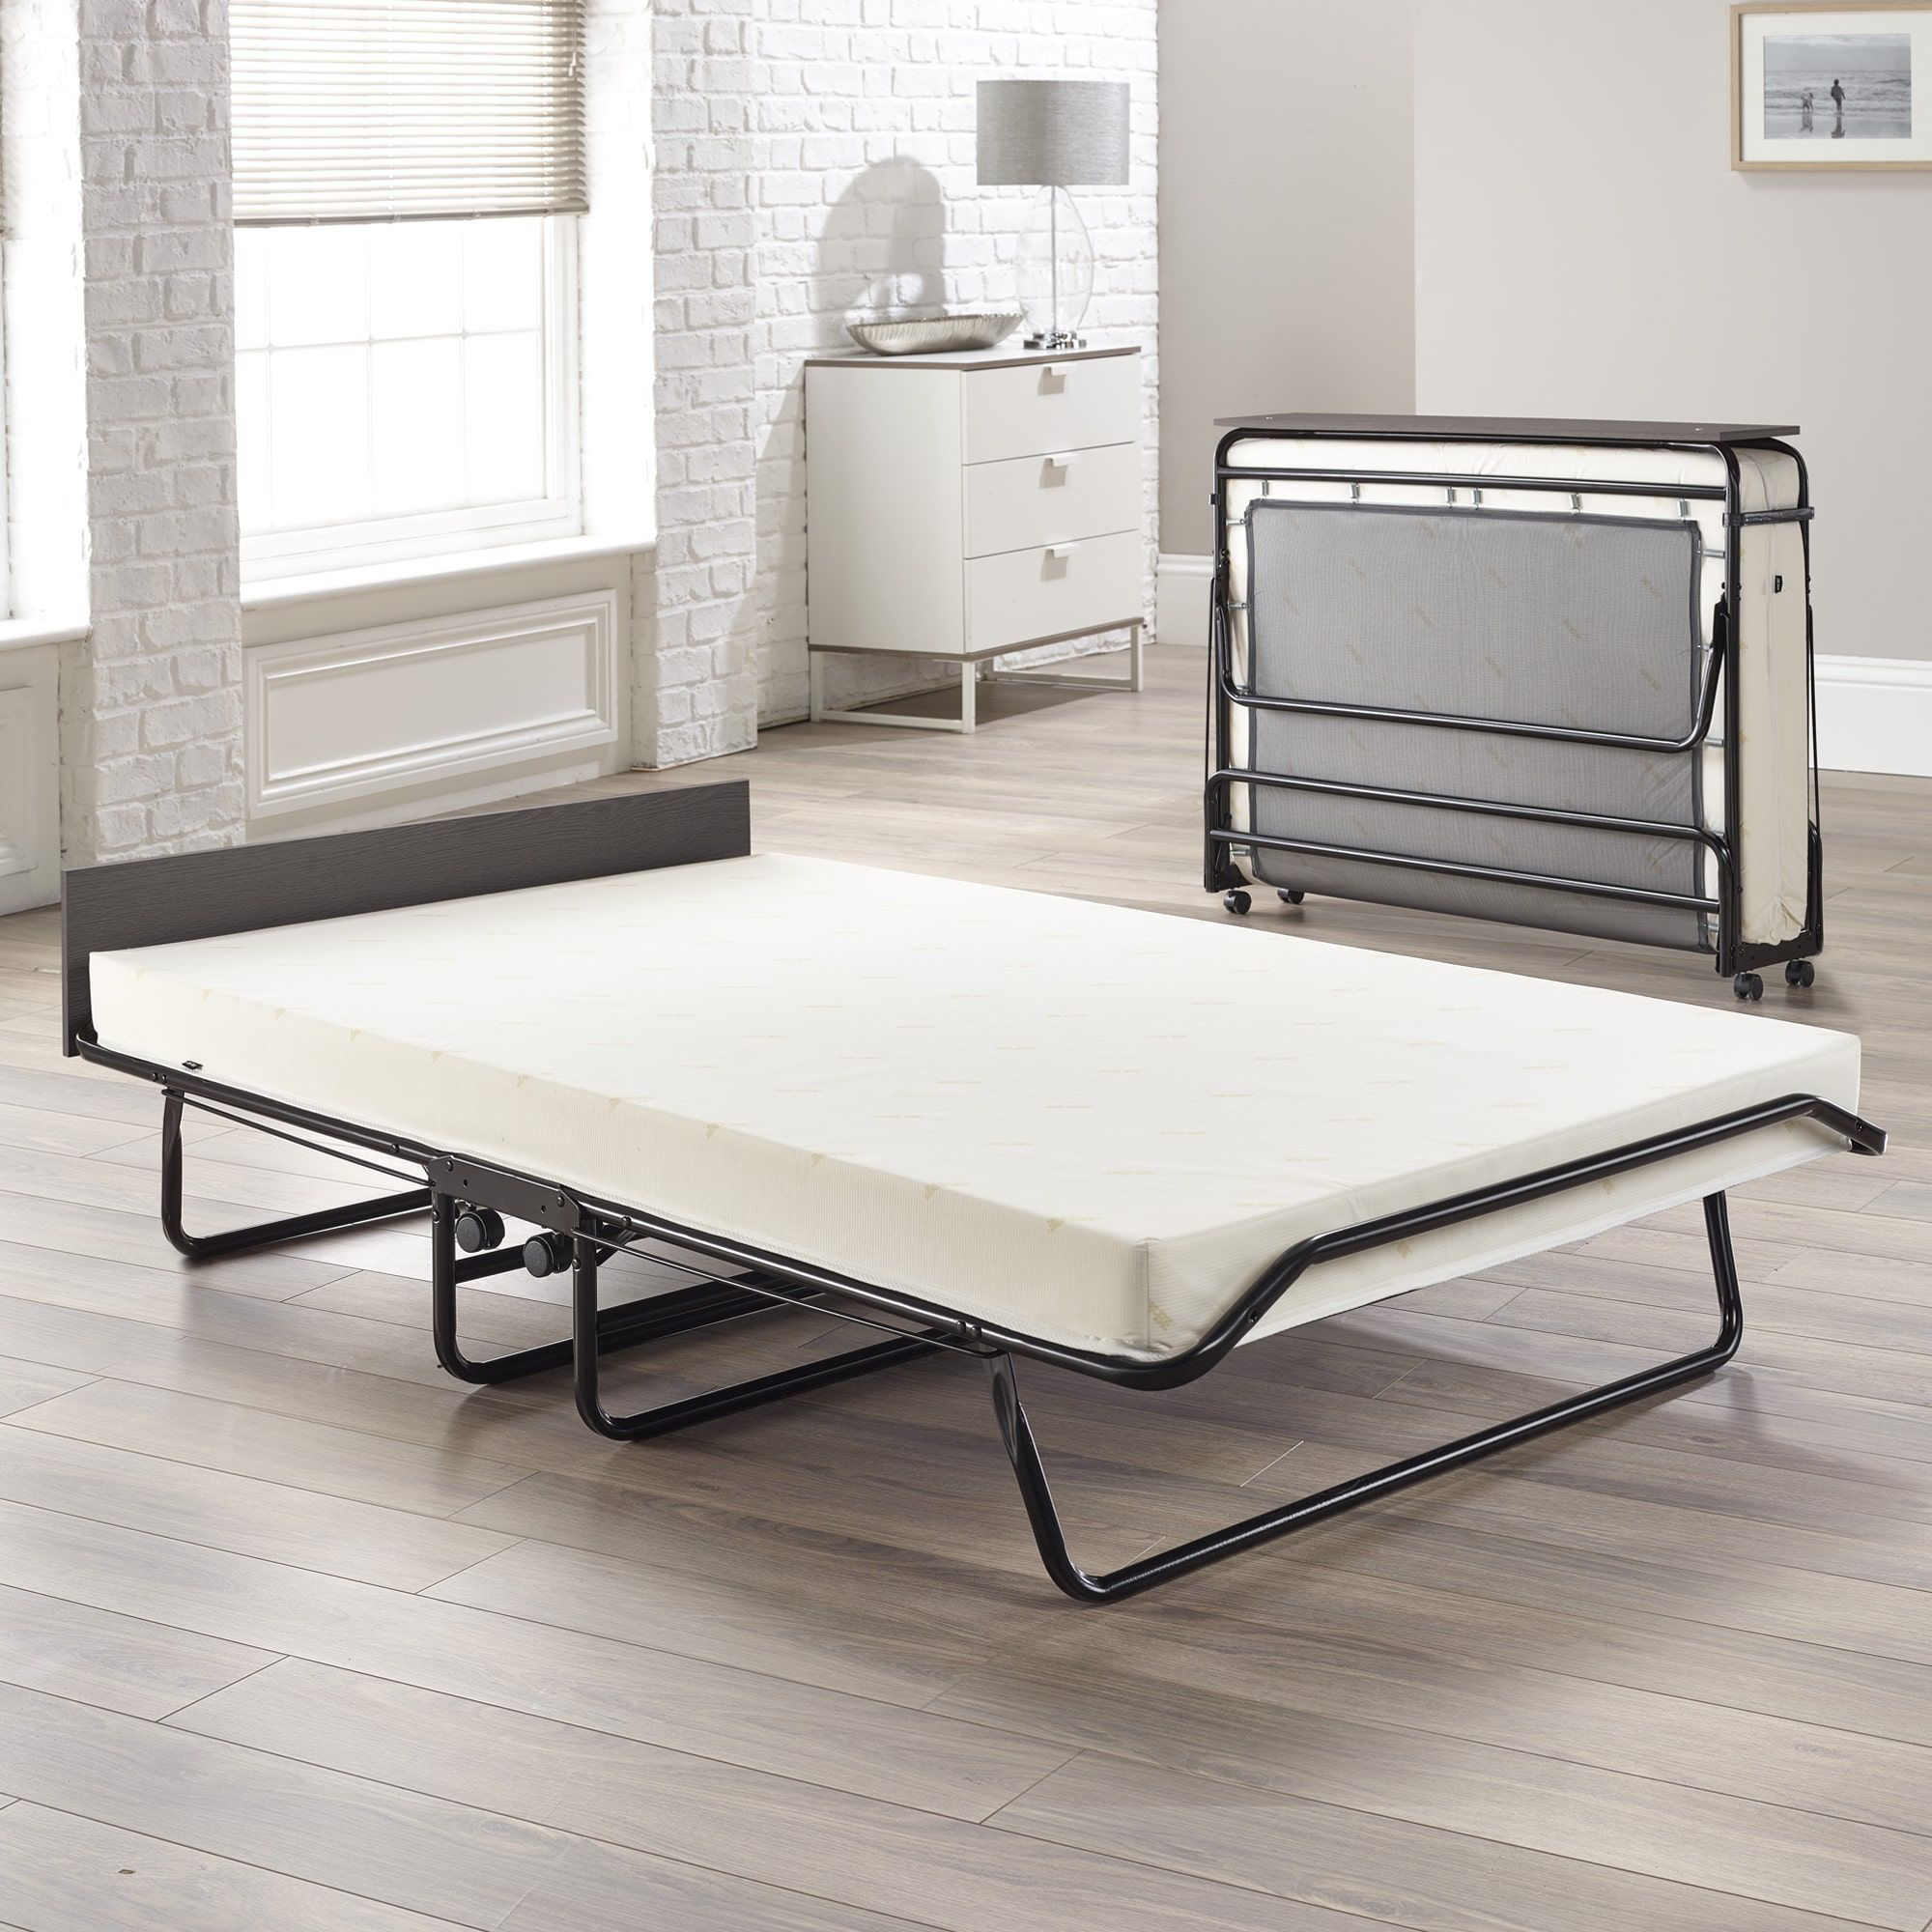 Jay Be Visitor Oversize Folding Bed With Memory Foam Mattress (107204),